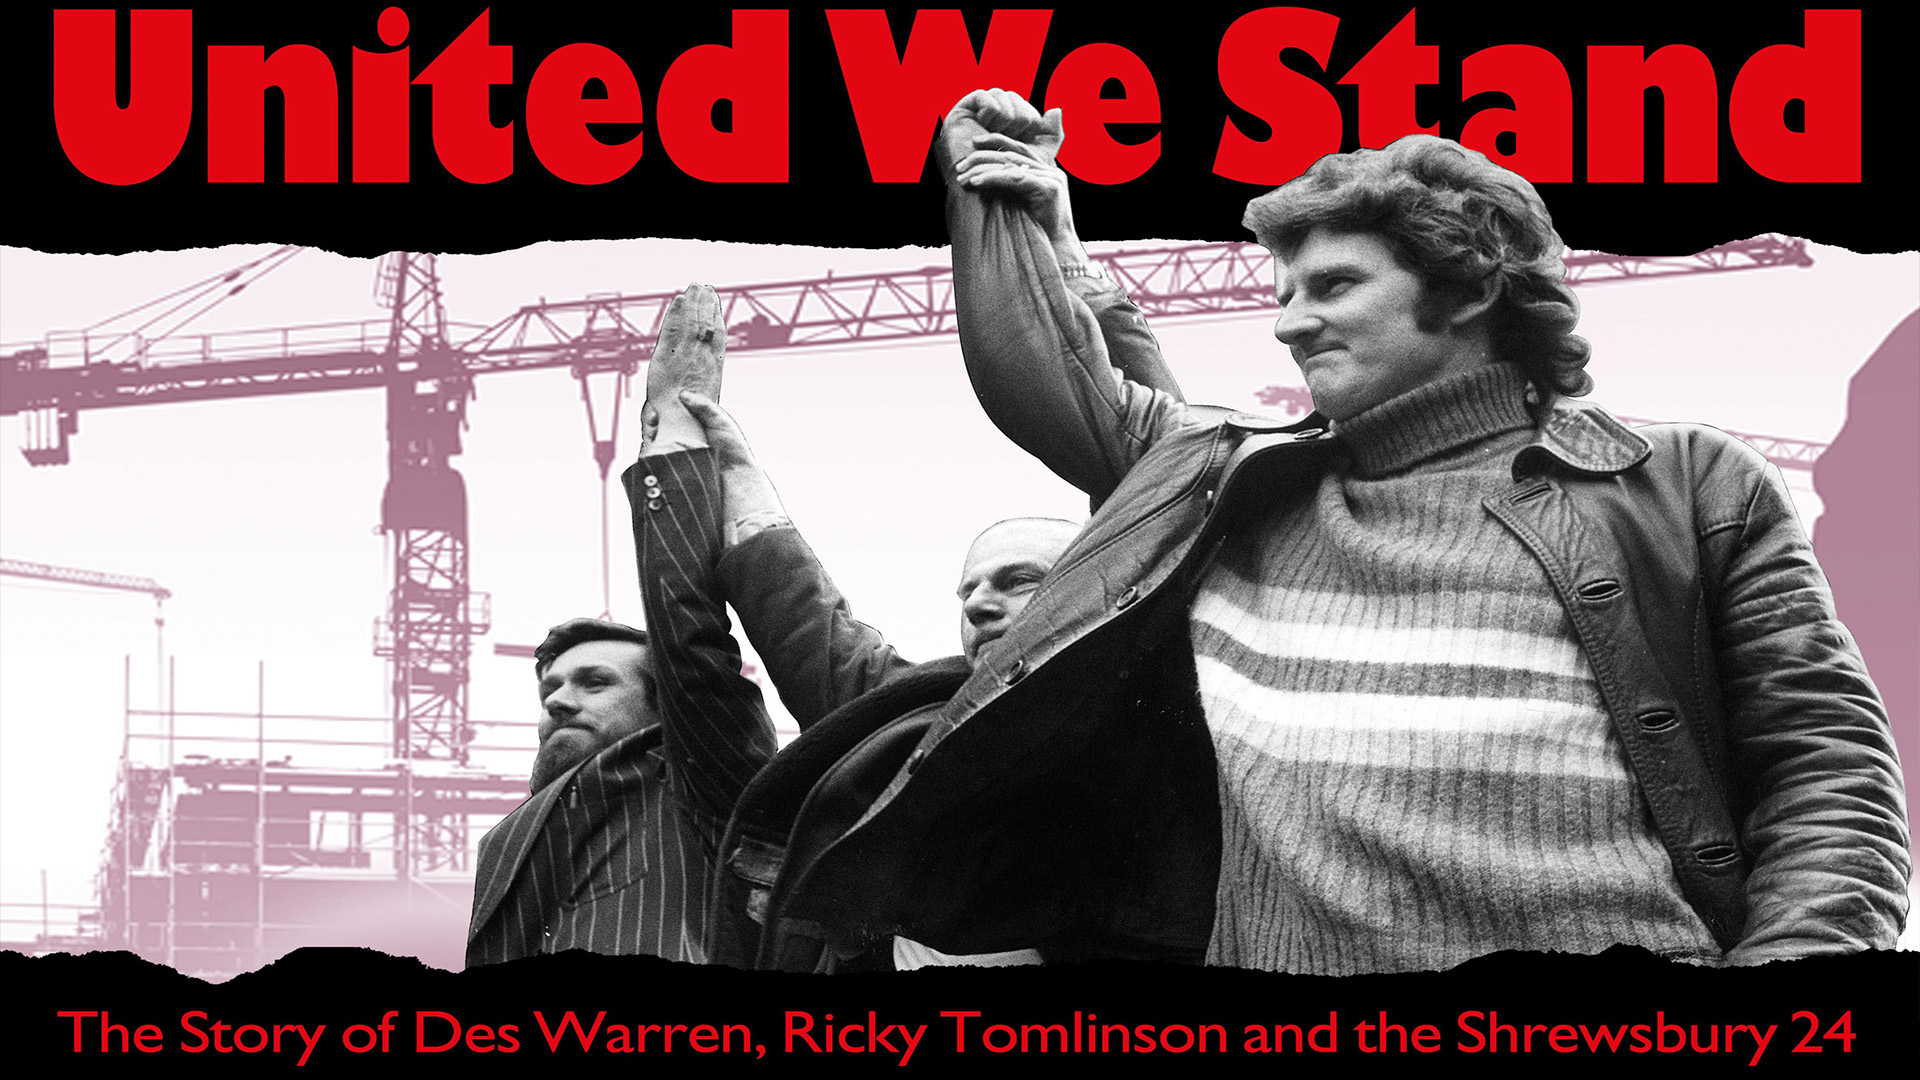 United We Stand is a gripping theatrical account of the case of the Shrewsbury 24, currently on tour around independent theatres in Britain.